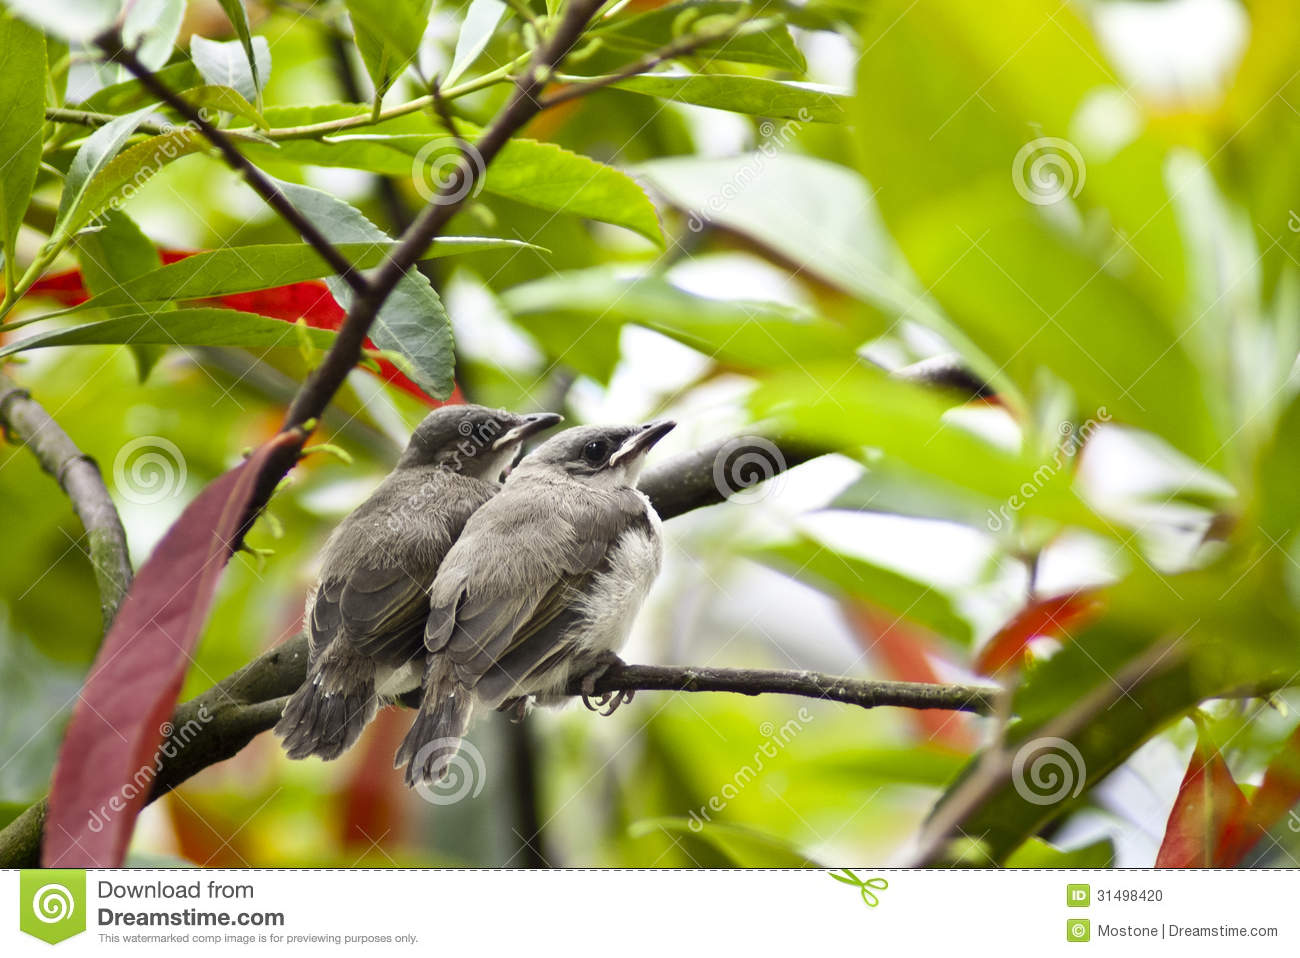 Lovebirds stock photo  Image of perching, leafy, cute - 31498420